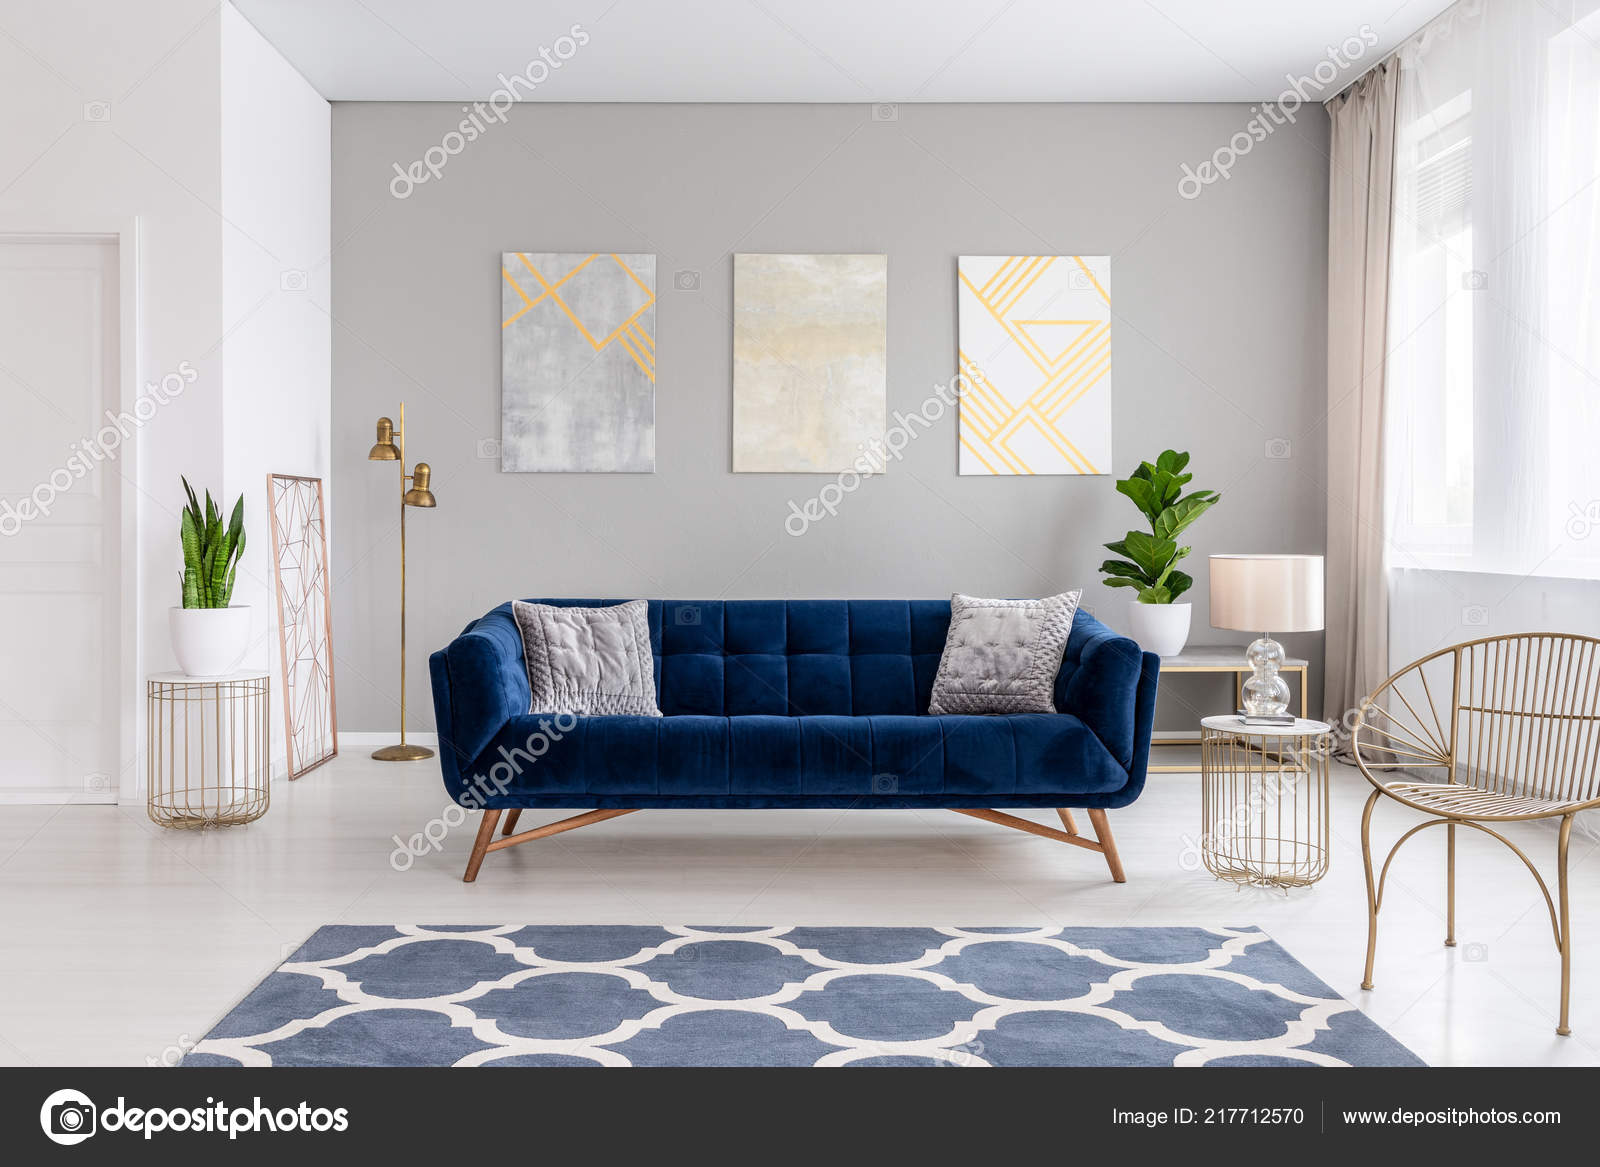 Enjoyable Elegant Navy Blue Sofa Middle Bright Living Room Interior Ncnpc Chair Design For Home Ncnpcorg